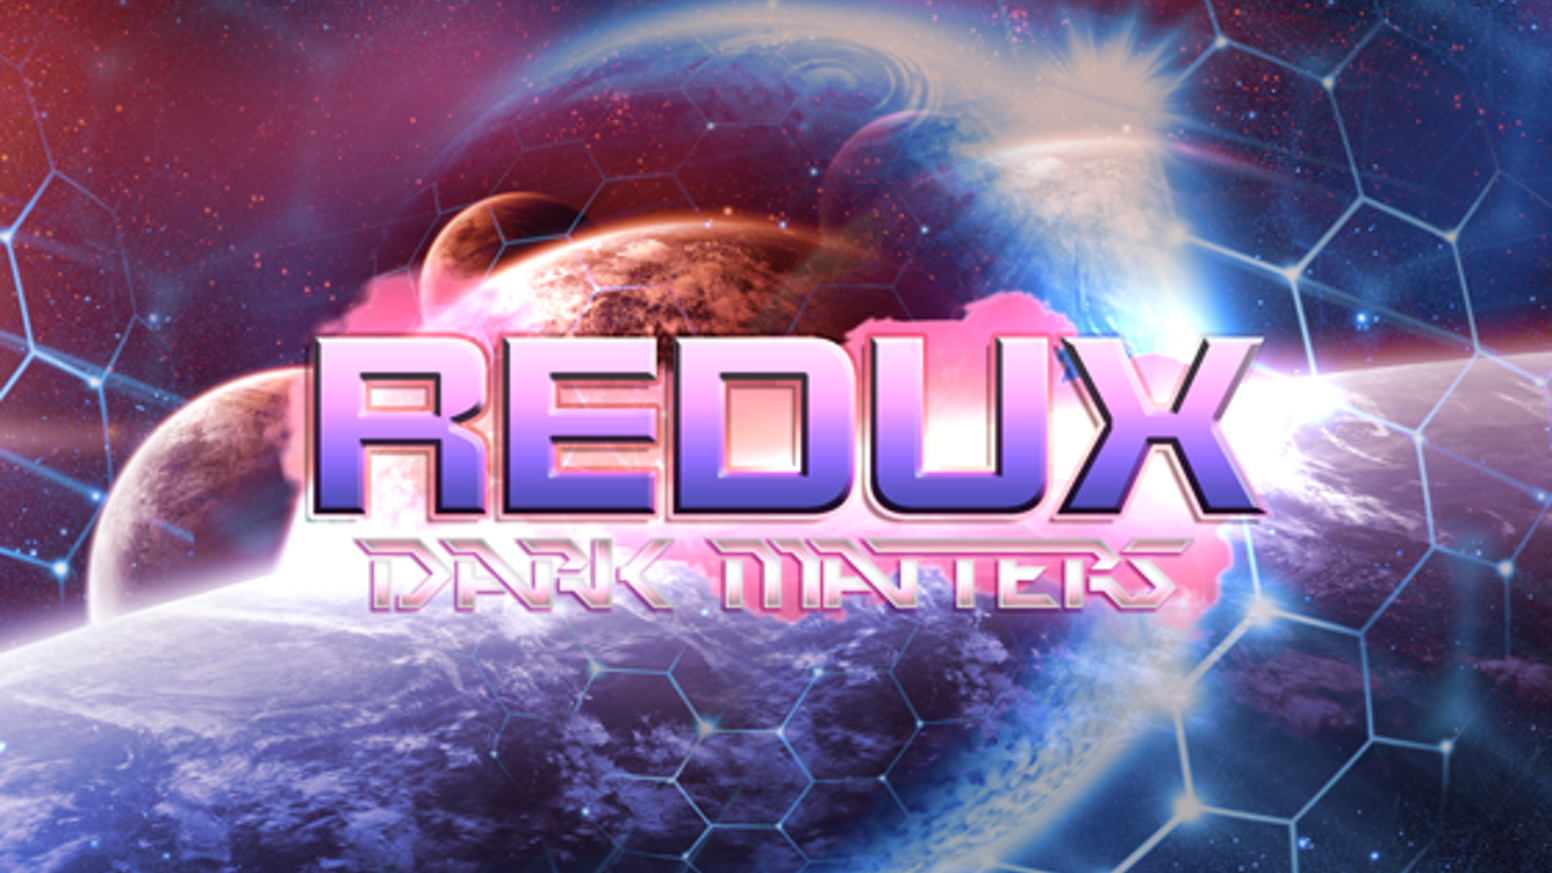 REDUX is a new shmup for the Sega Dreamcast/iOS brought to you by one of the guys who created GunLord, Fast Striker, Last Hope and DUX.